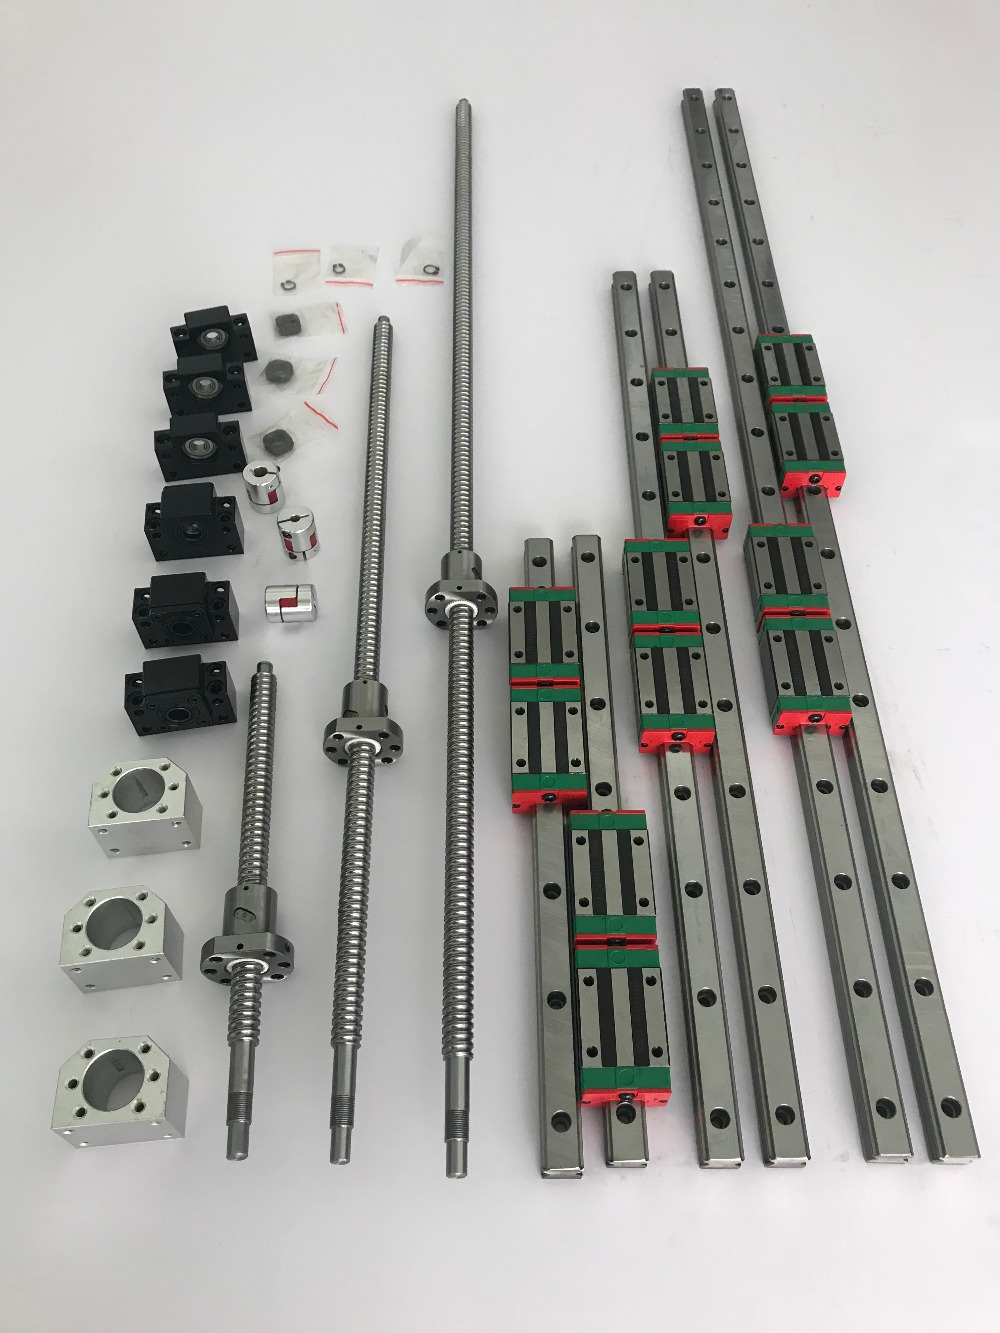 6 sets linear guide rail HGR20- 400/700/1000mm + SFU1605- 400/700/1000mm Ballscrew + BK/BF12 + Nut housing + Coupling CNC parts 3 linear guidesbr16 300 700 1000 1000mm 4ball screws 1605 300 700 1000 1000mm 4bkbf12 4ballnut housing 4coupling 6 35 10